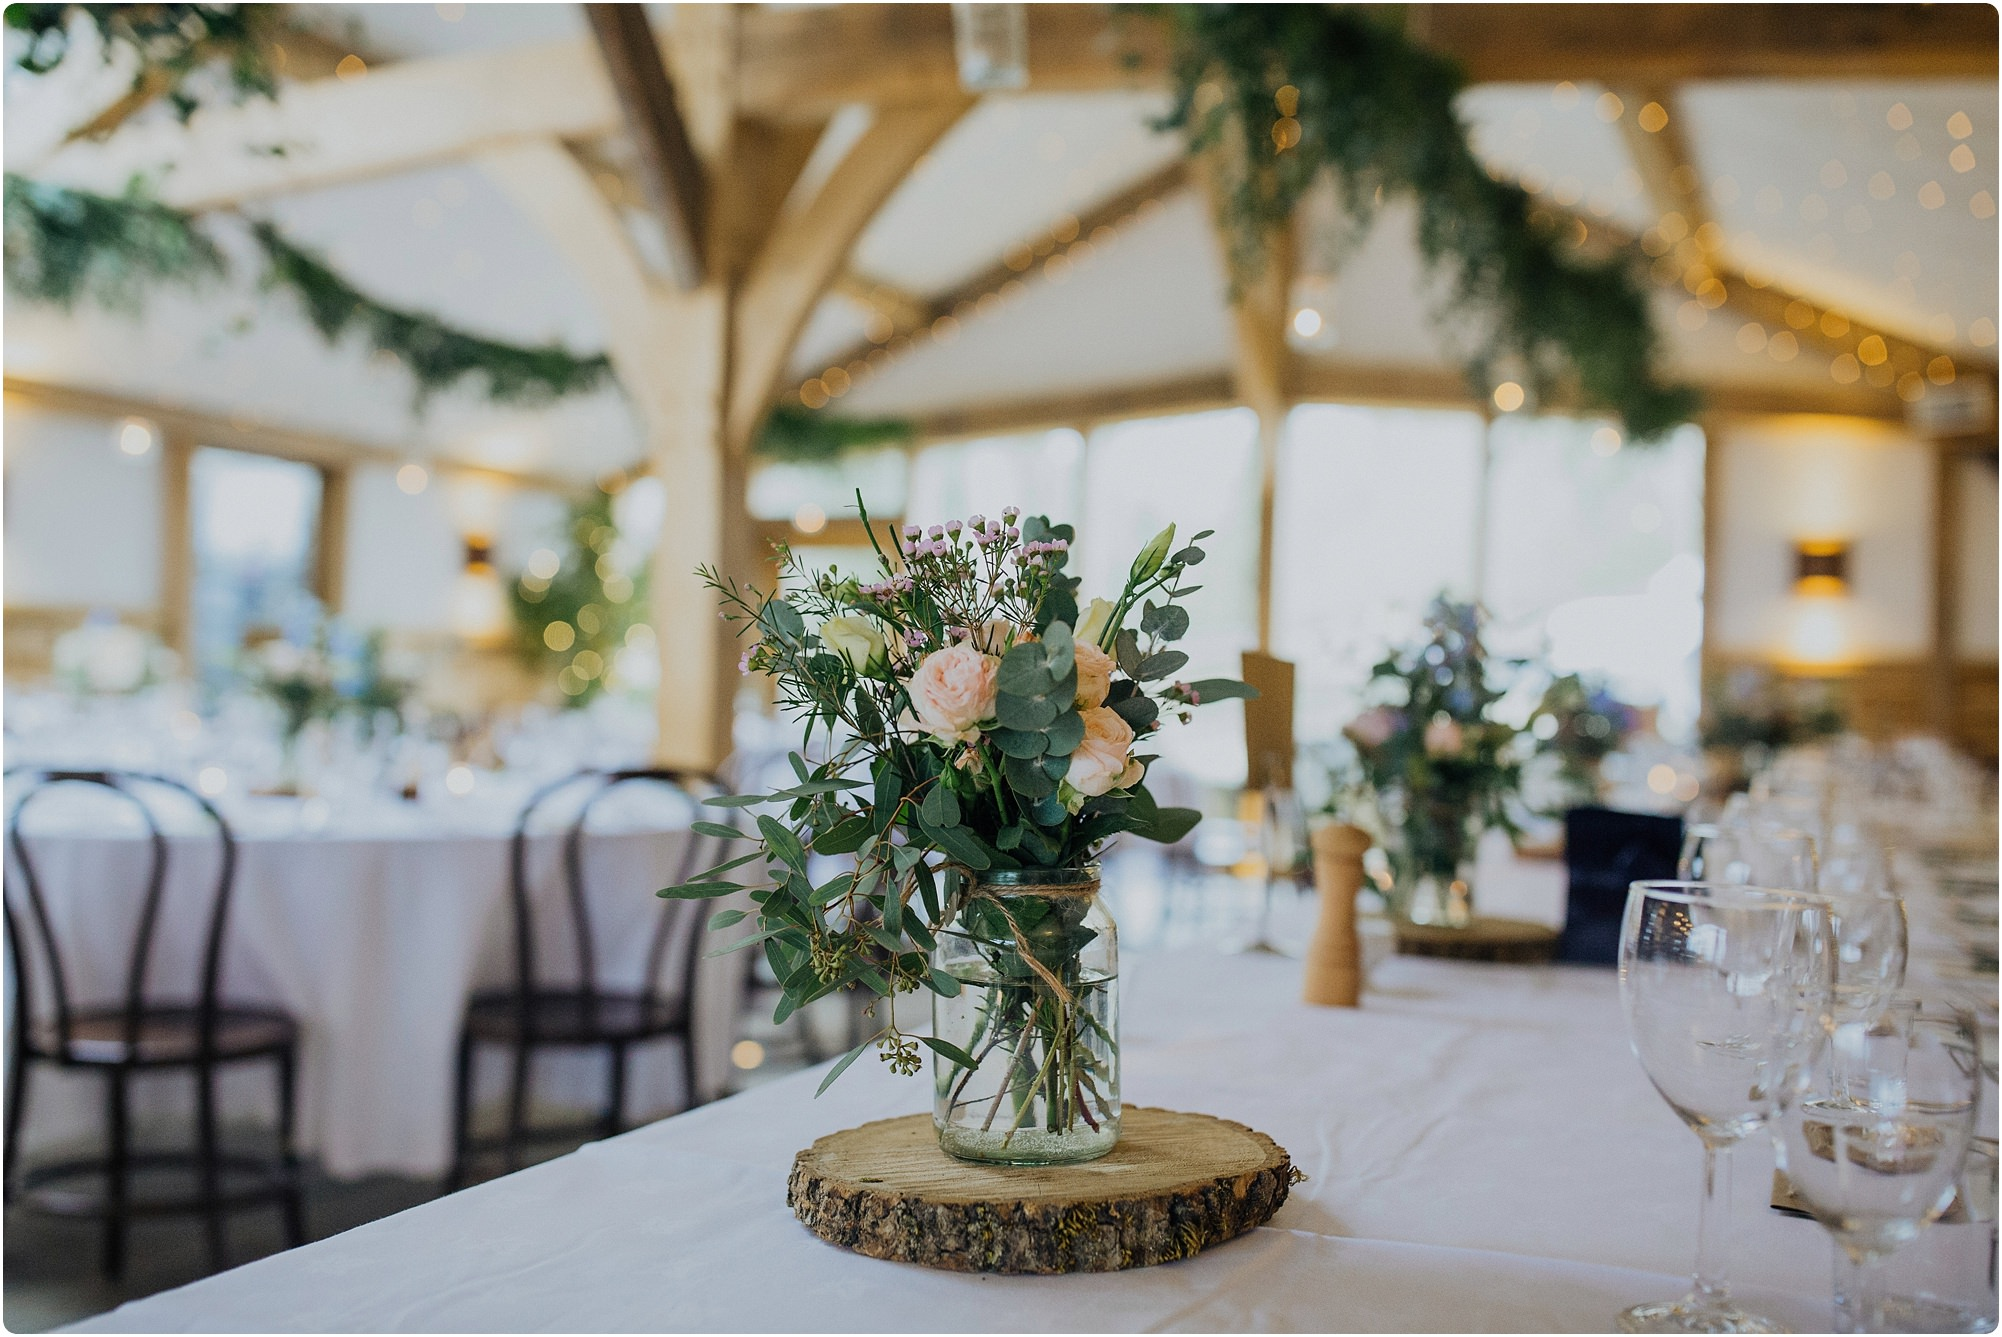 centre piece flowers by Go Wild Flowers at a Cripps Barn Winter Wedding